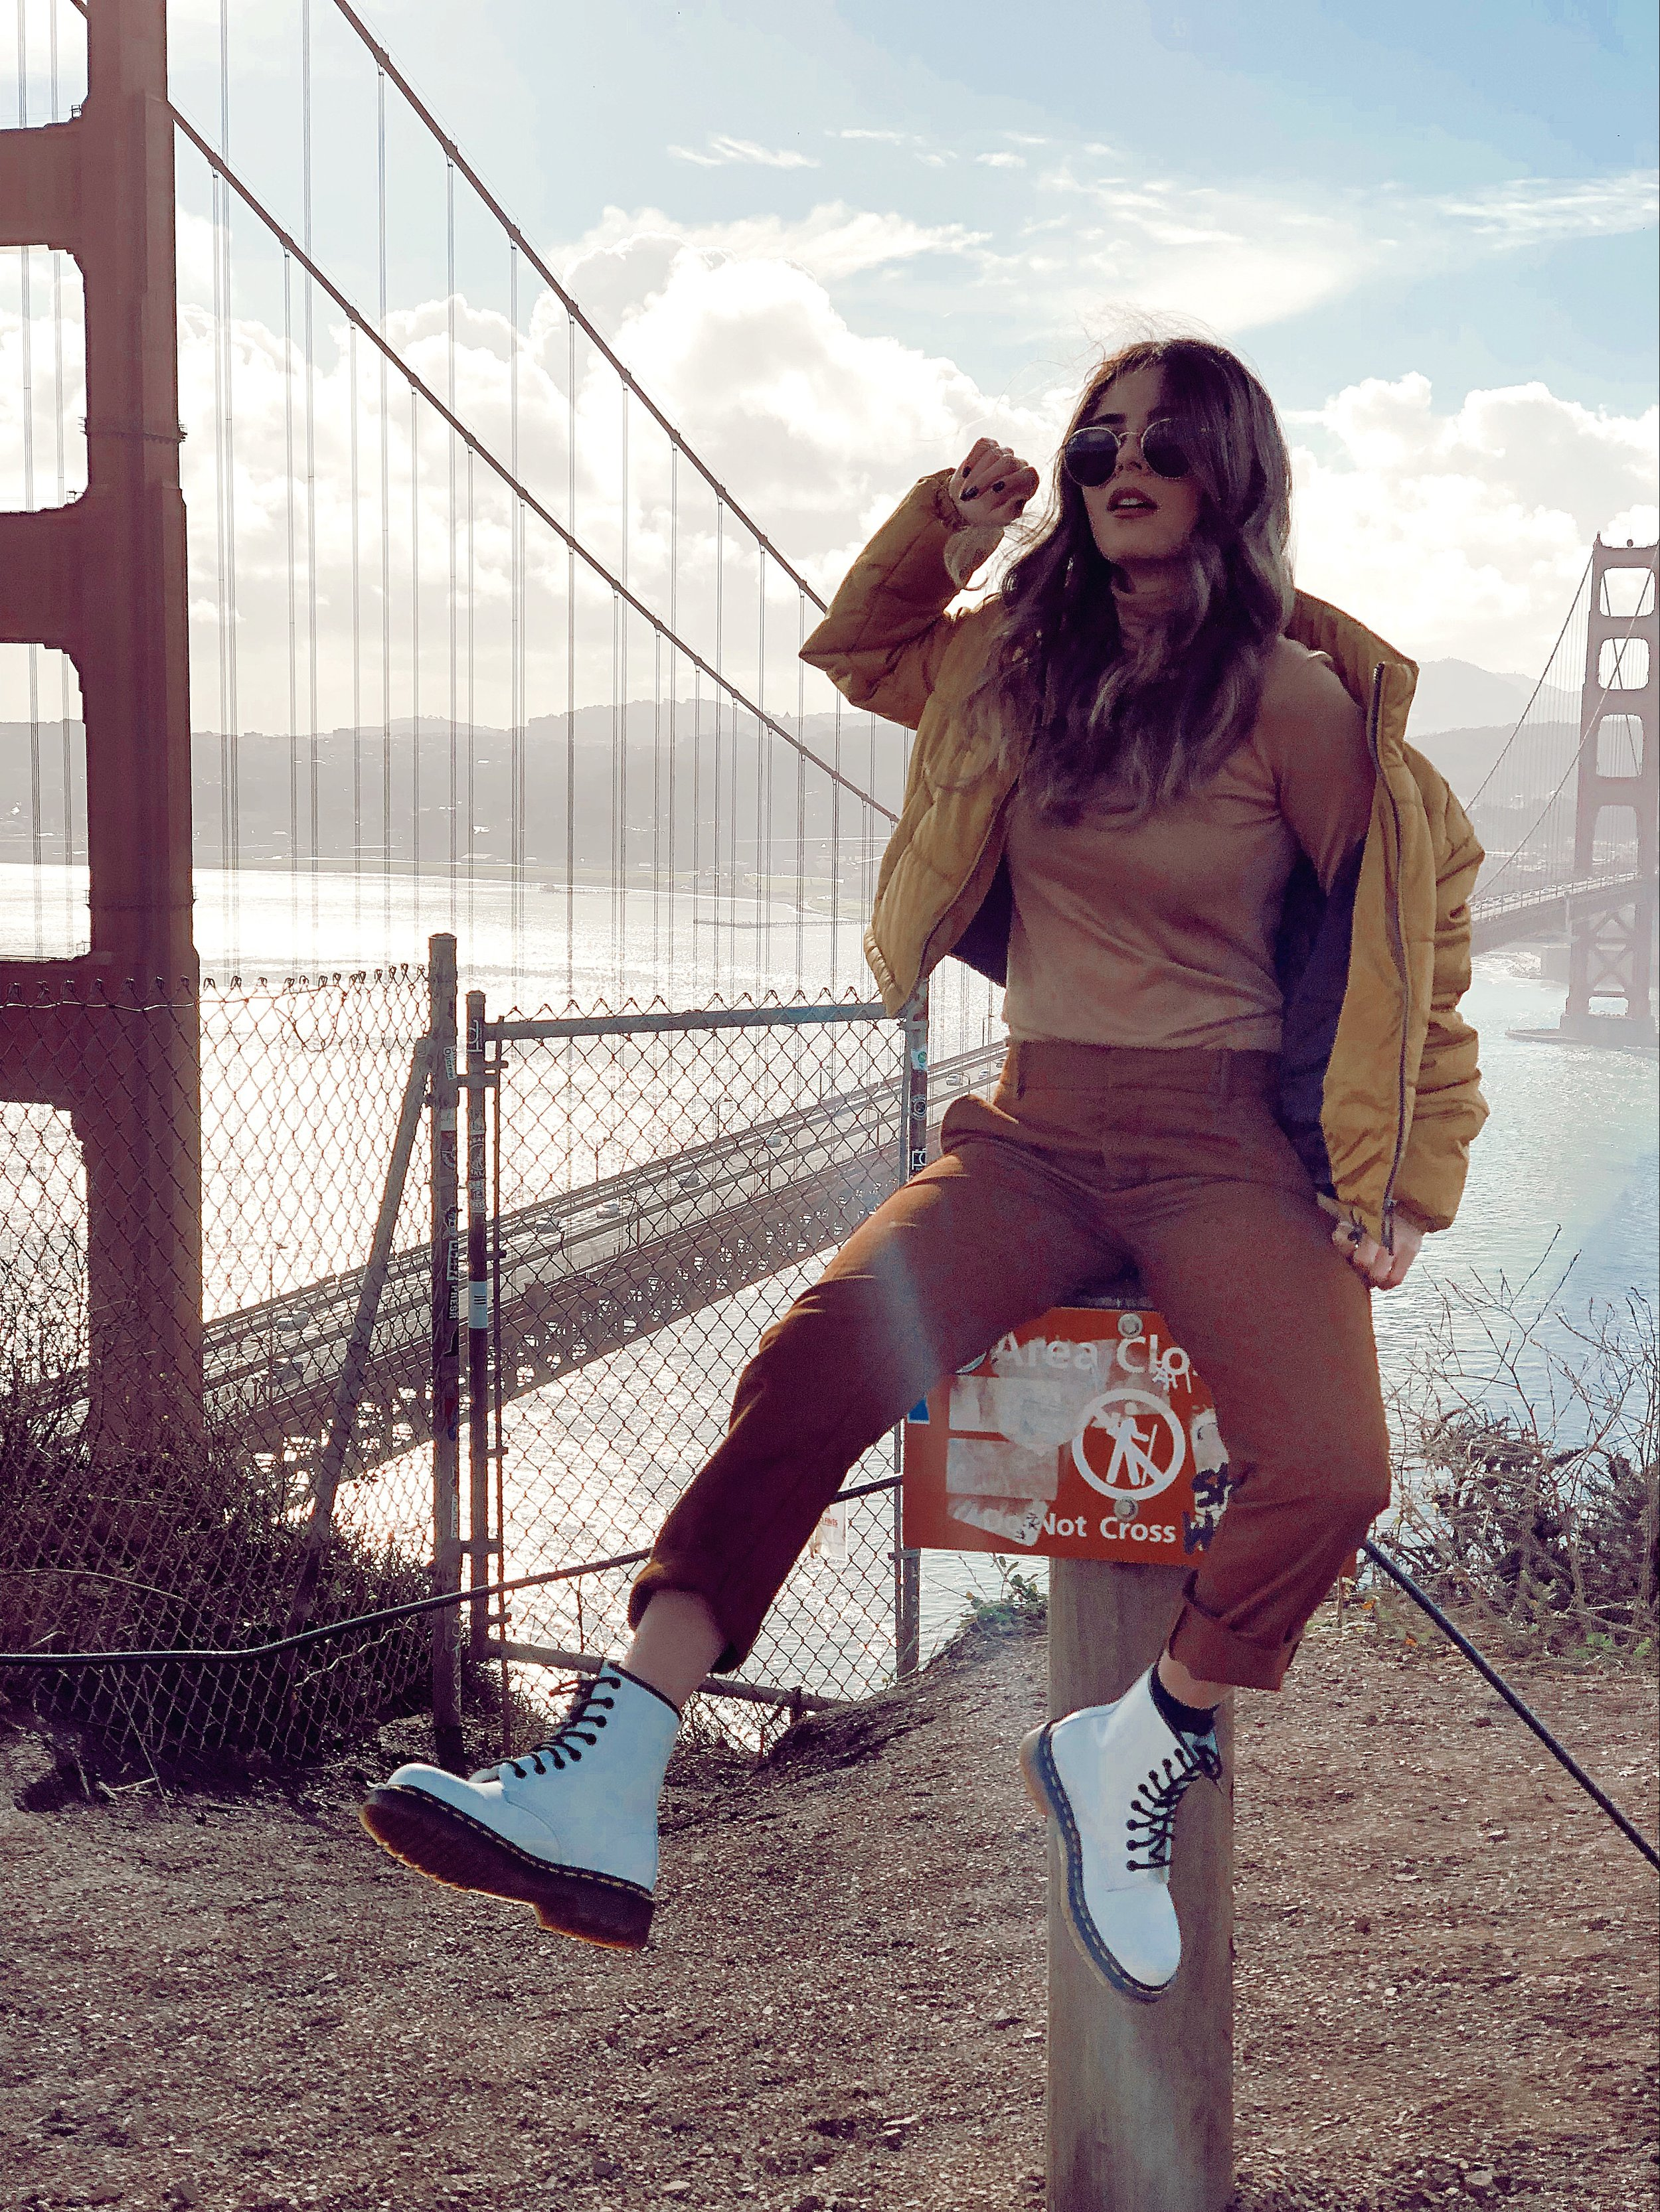 Fashion Blogger's Guide To San Francisco - I decided to put up a guide to San Francisco from a fashion blogger's stand-point and help people like me explore SF and get the most out of it on Insta!